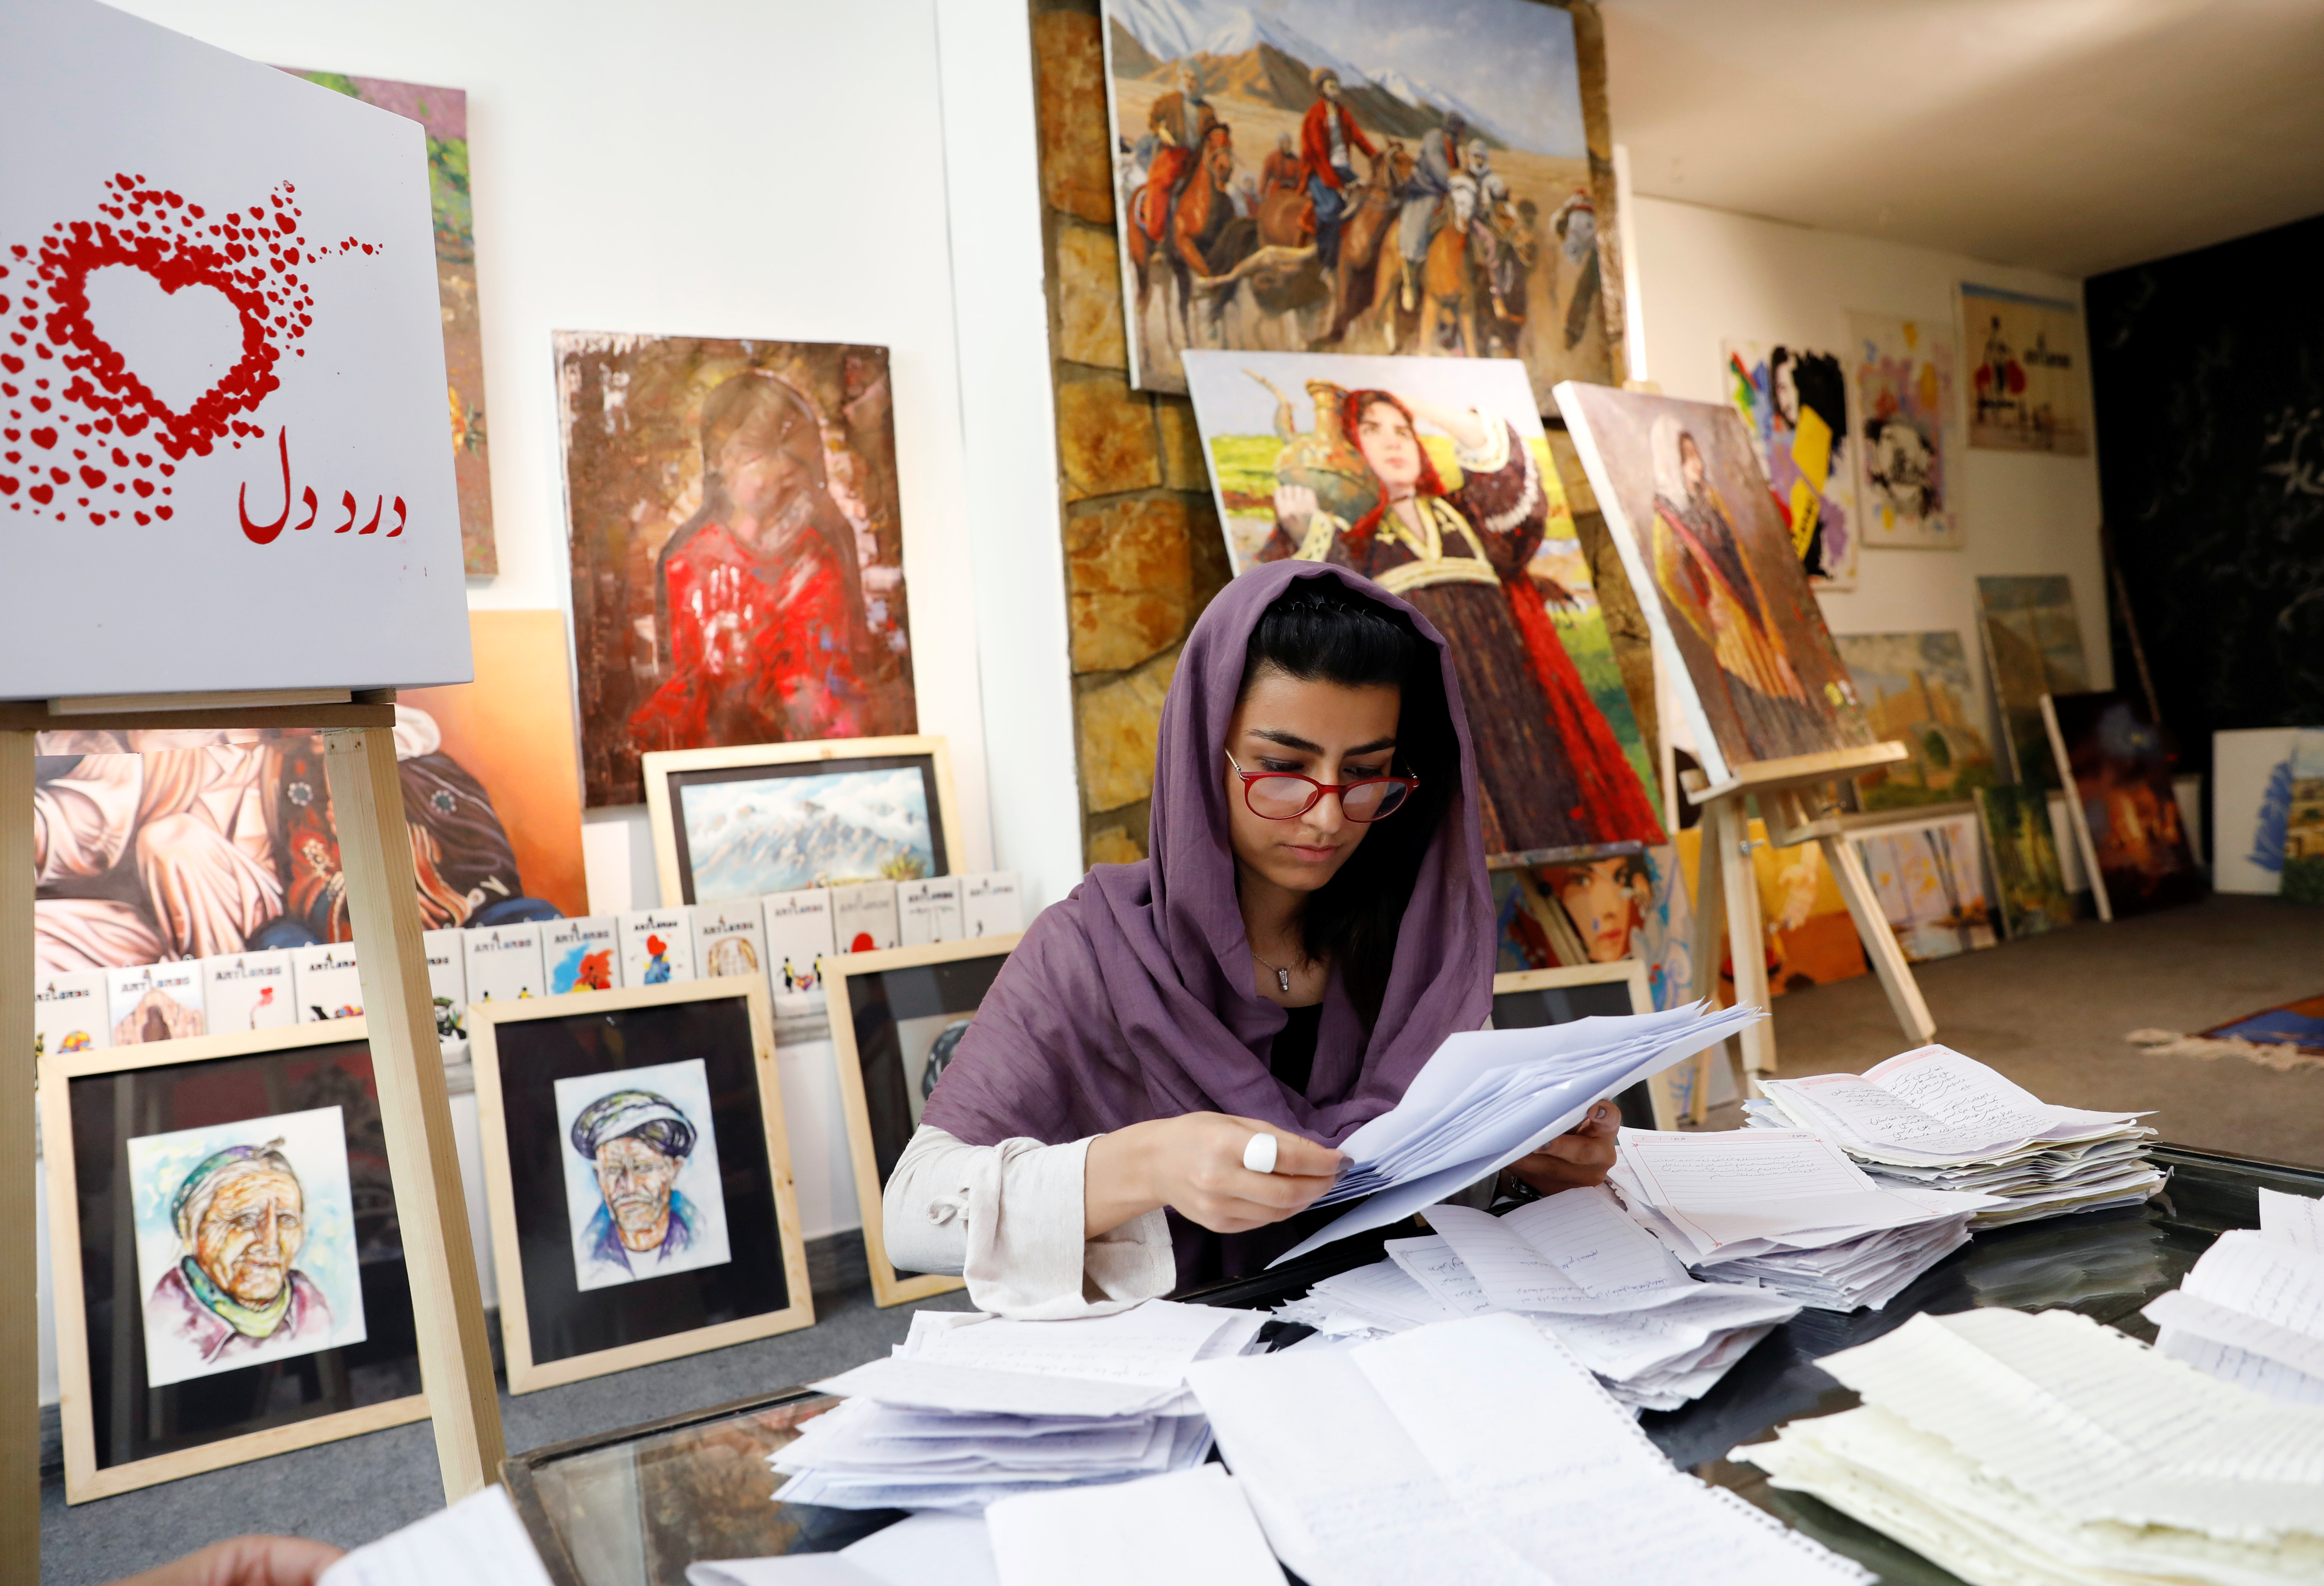 A member of the ArtLords sorts letters of Dard-e-Dil (a painful heart) project in Kabul, Afghanistan July 6, 2019. Picture taken July 6, 2019. REUTERS/Mohammad Ismail